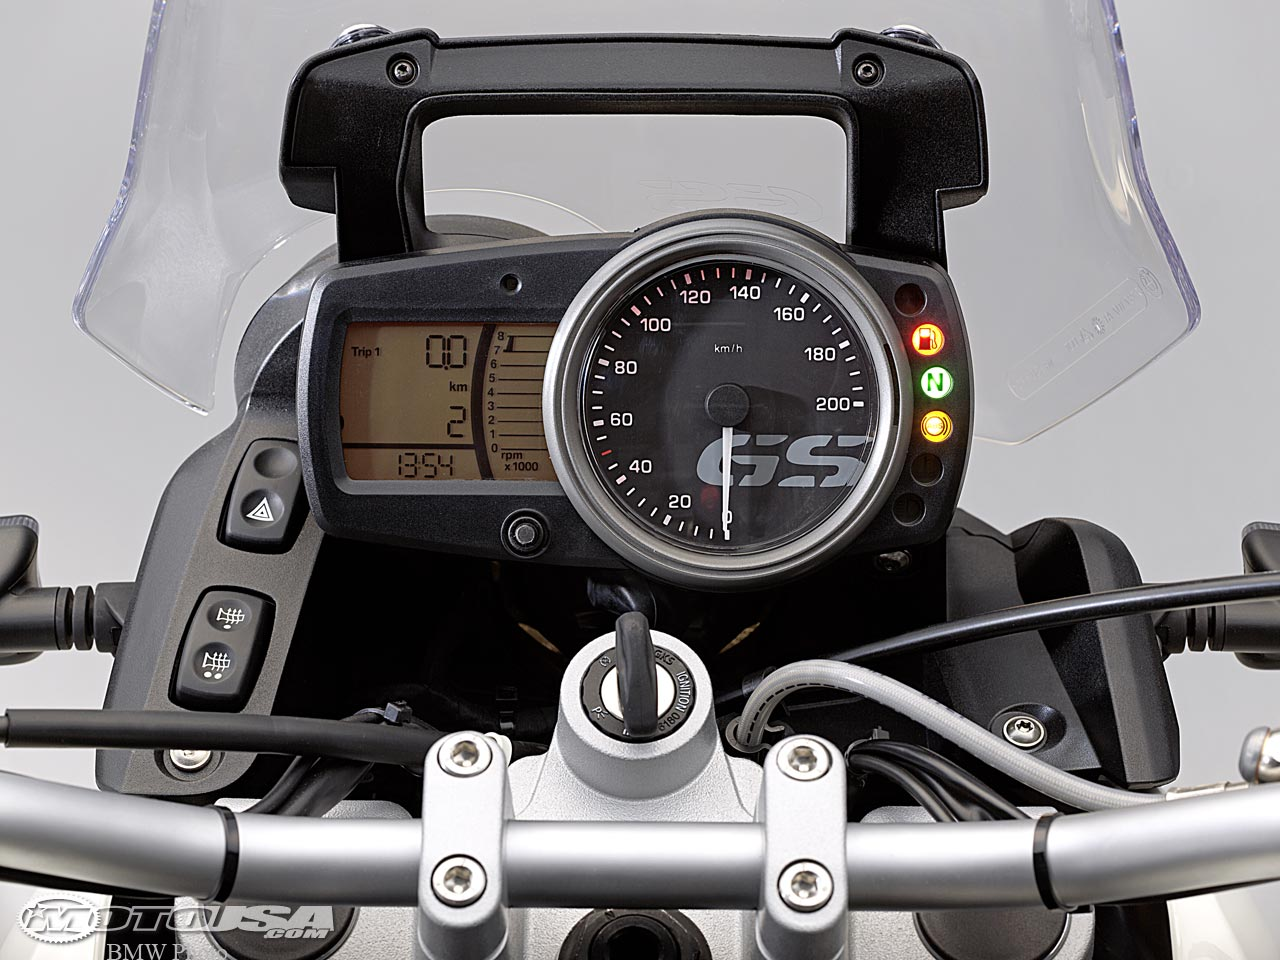 BMW G 650 GS images #8863